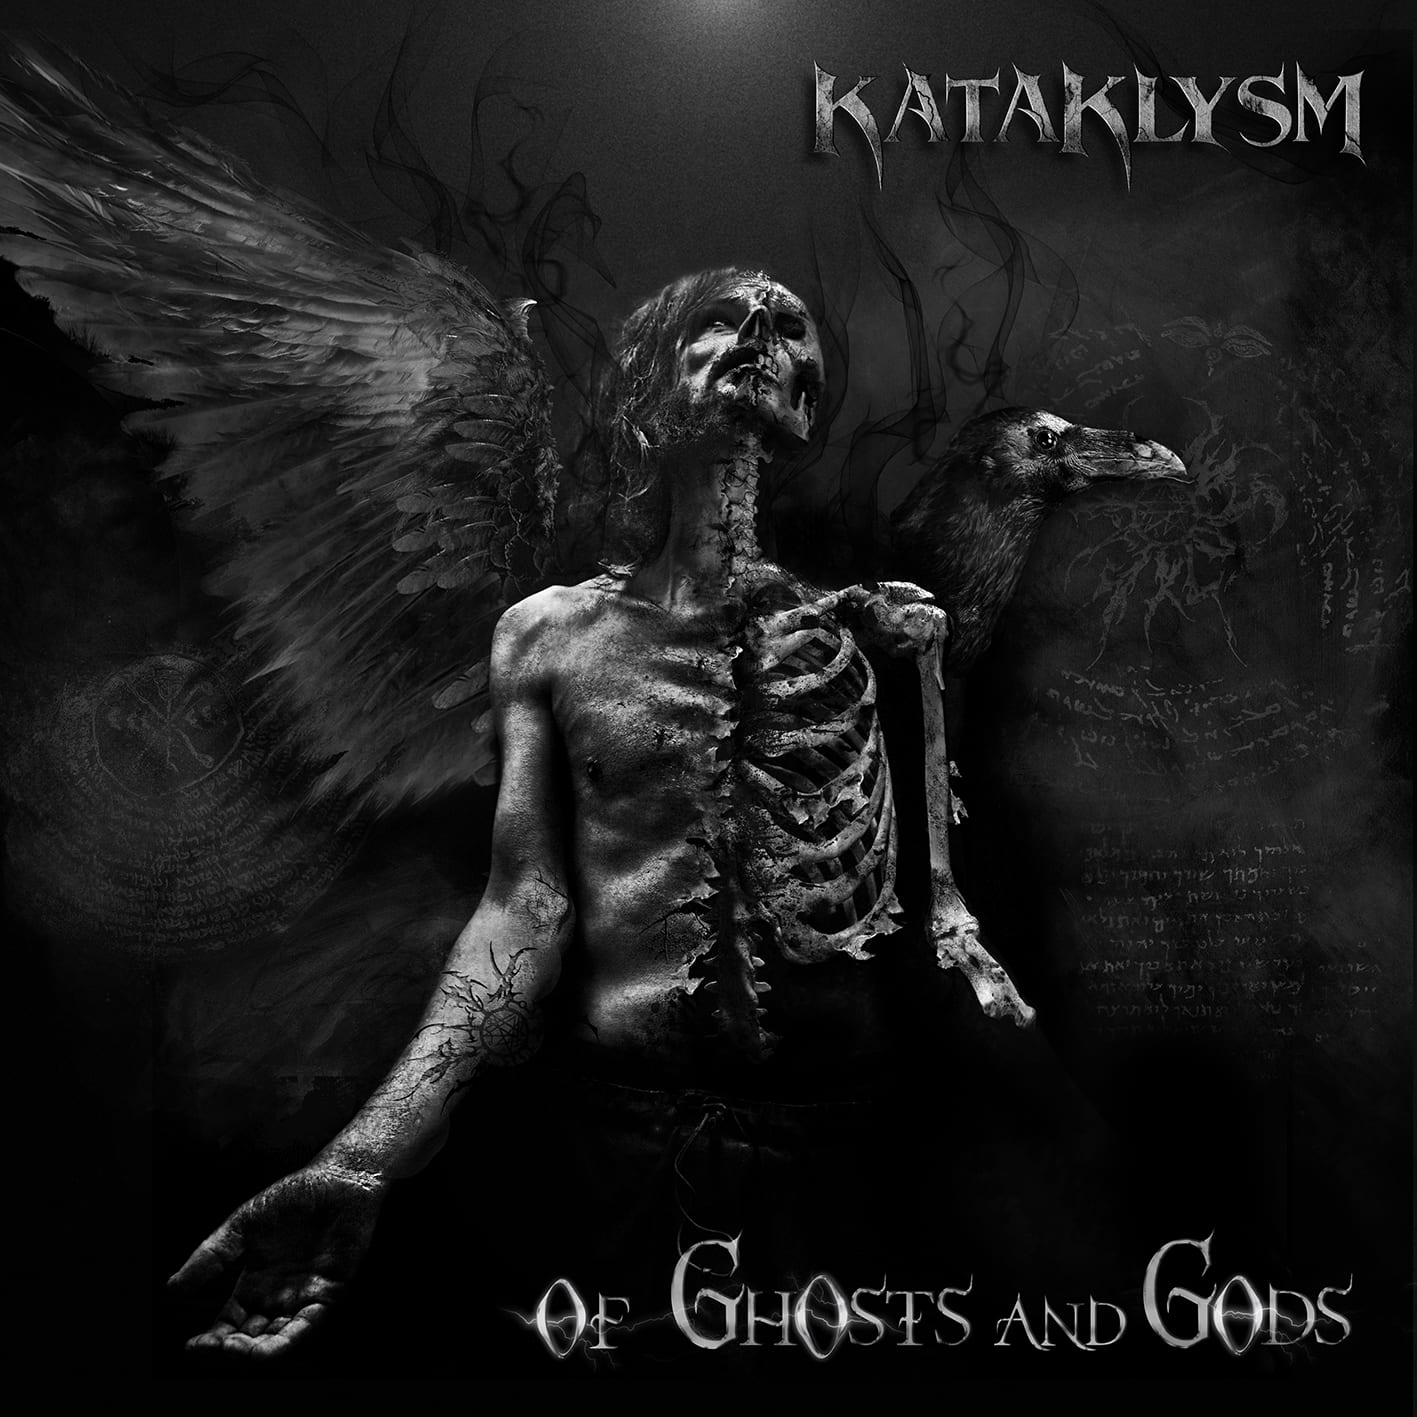 Cover: kataklysm - of ghosts and gods